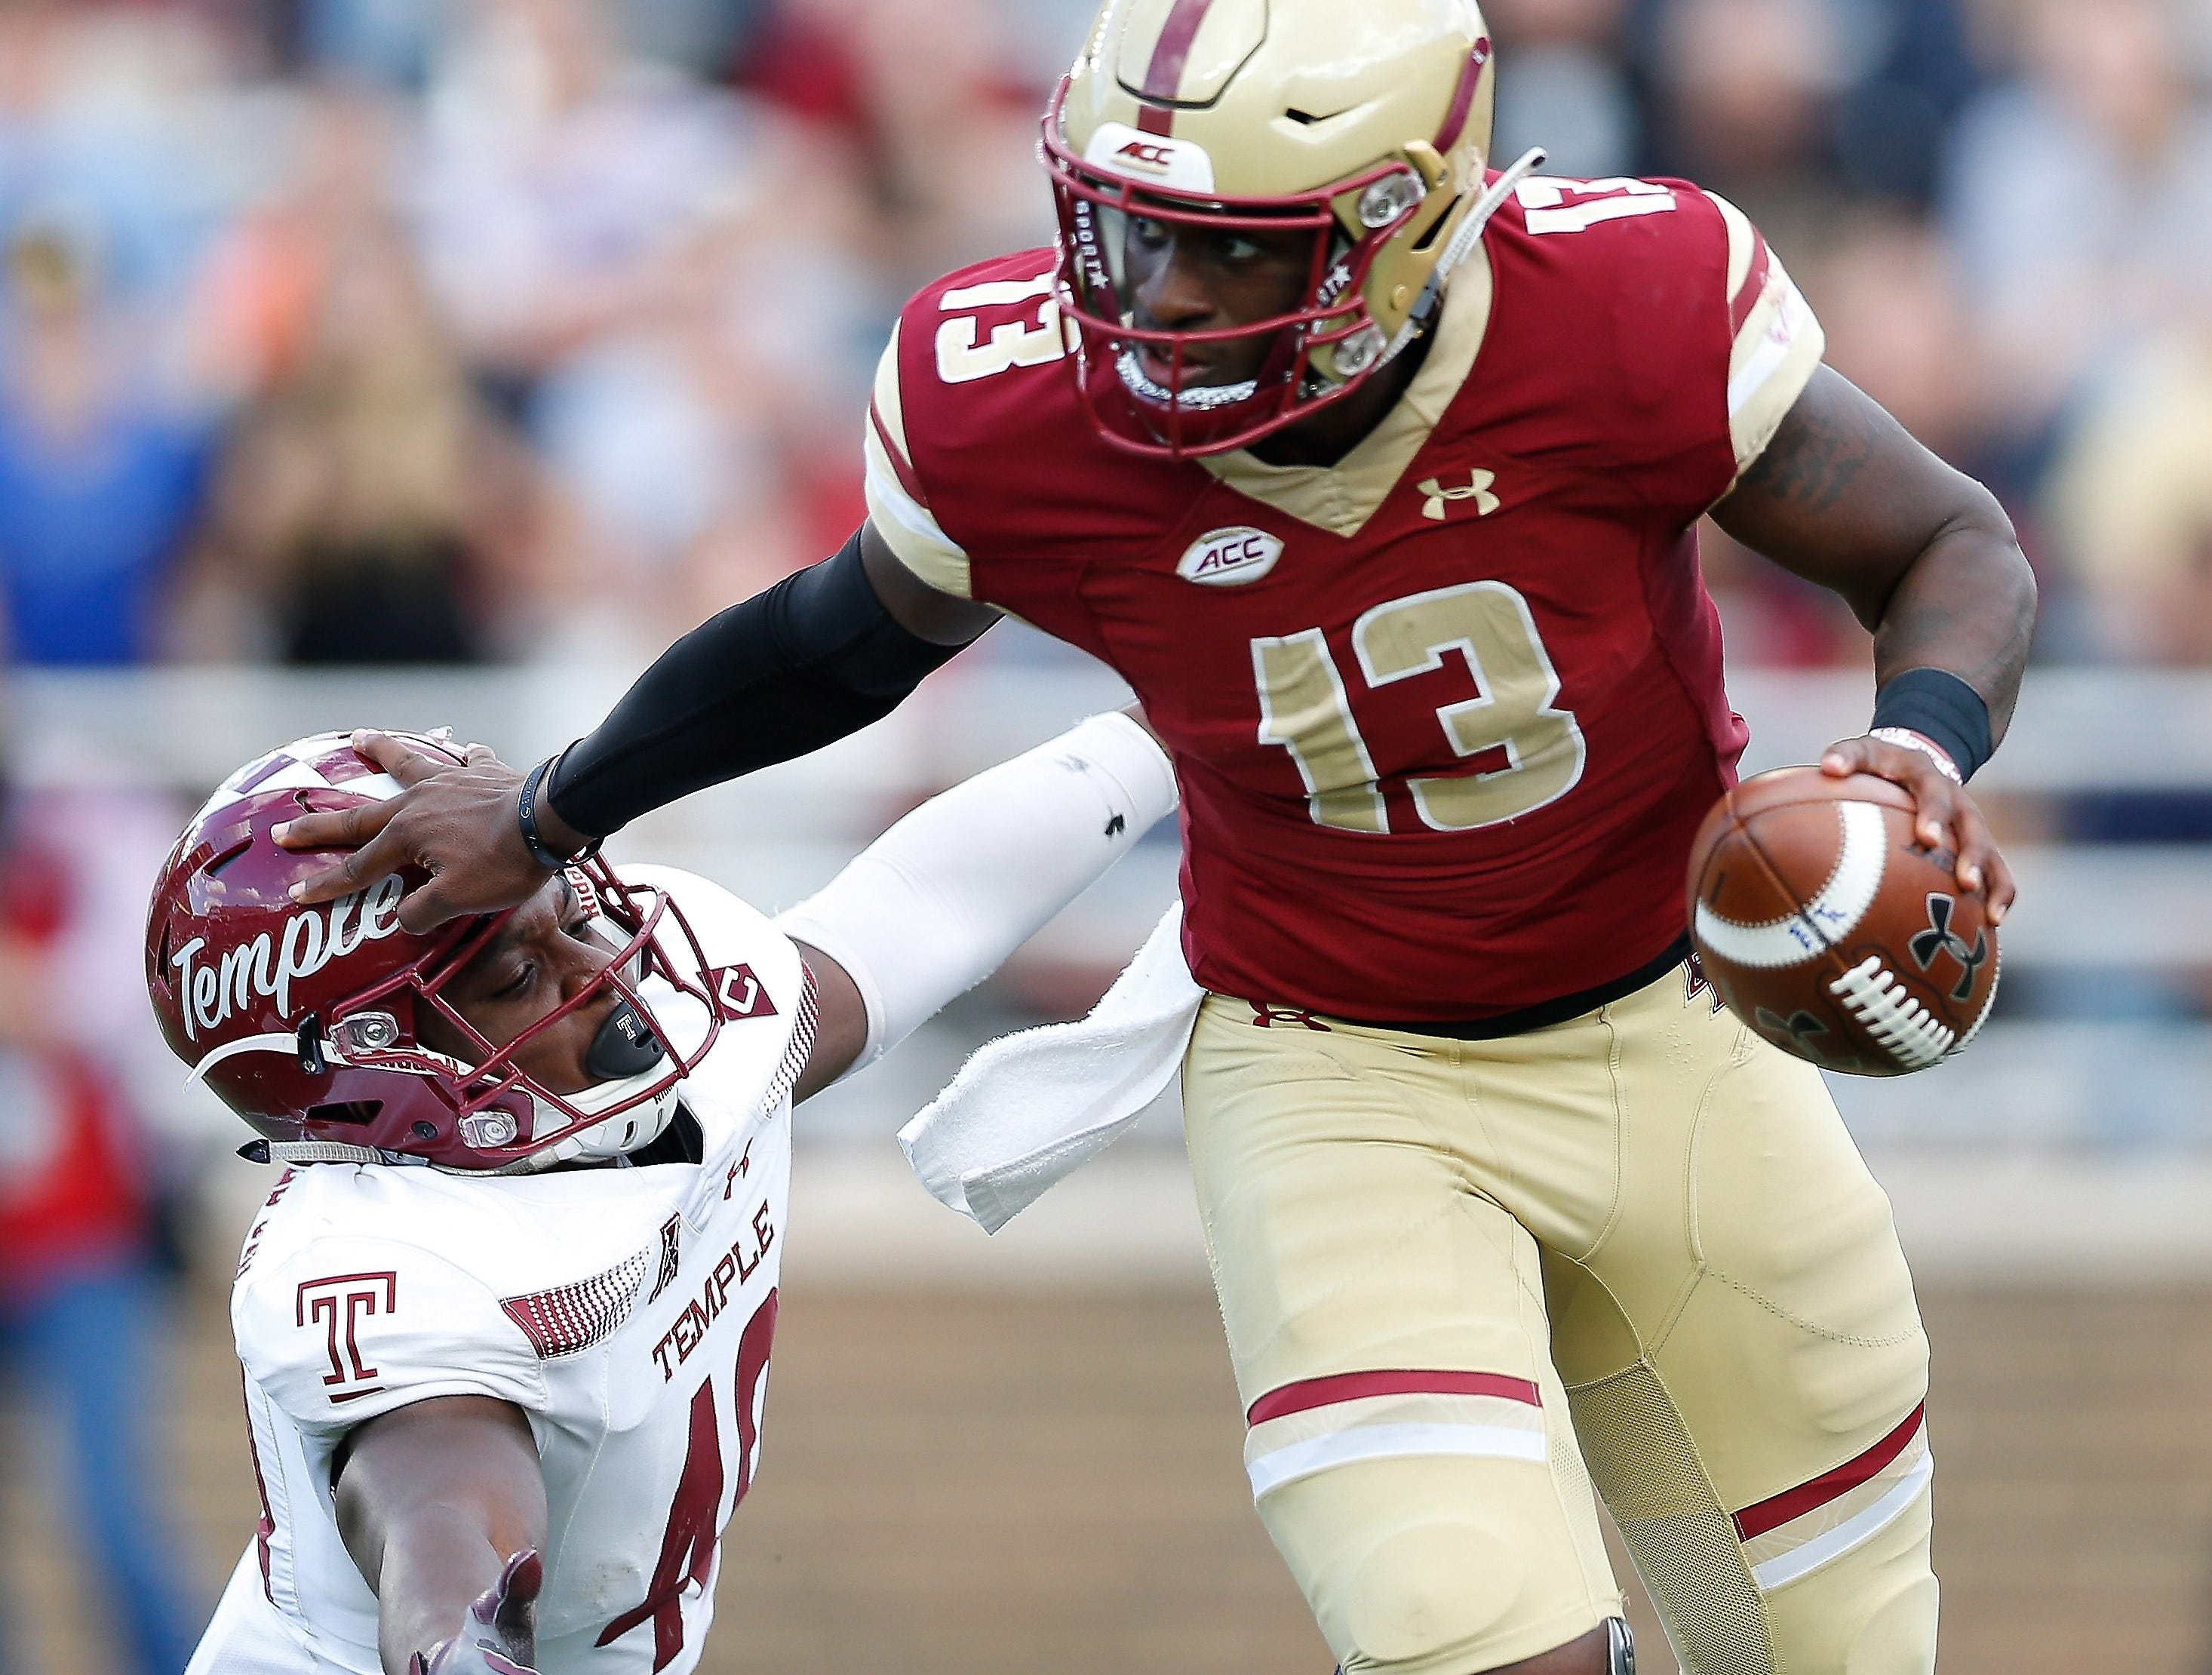 Boston College Eagles quarterback Anthony Brown (13) evades the tackle of Temple Owls linebacker Todd Jones (40) during the second half at Alumni Stadium.